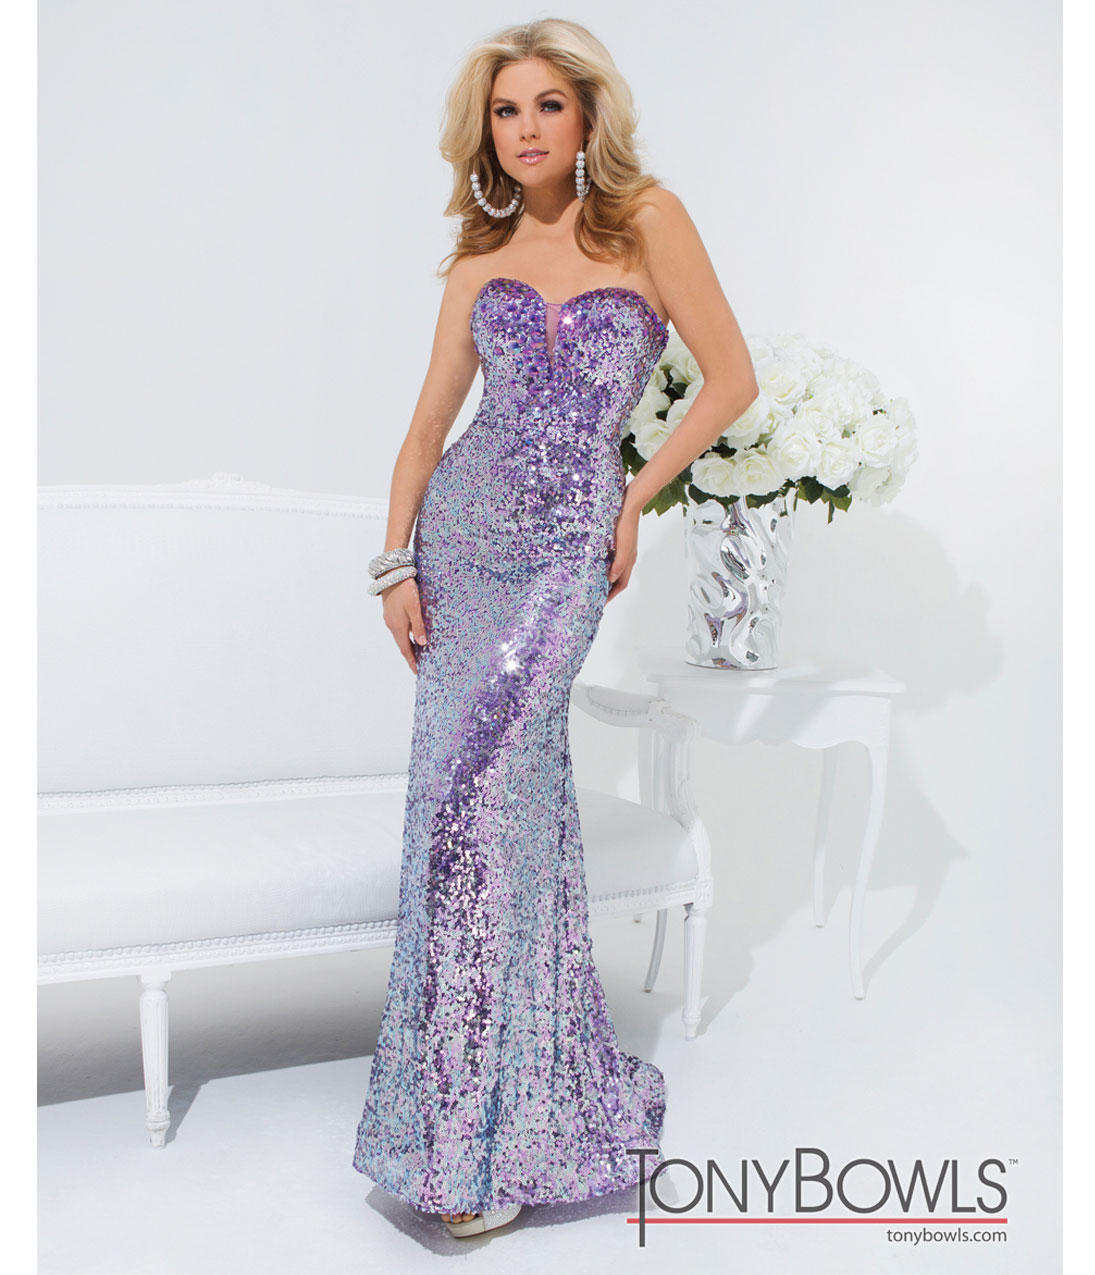 Pre Order Tony Bowls 2014 Prom Dresses From Unique Vintage